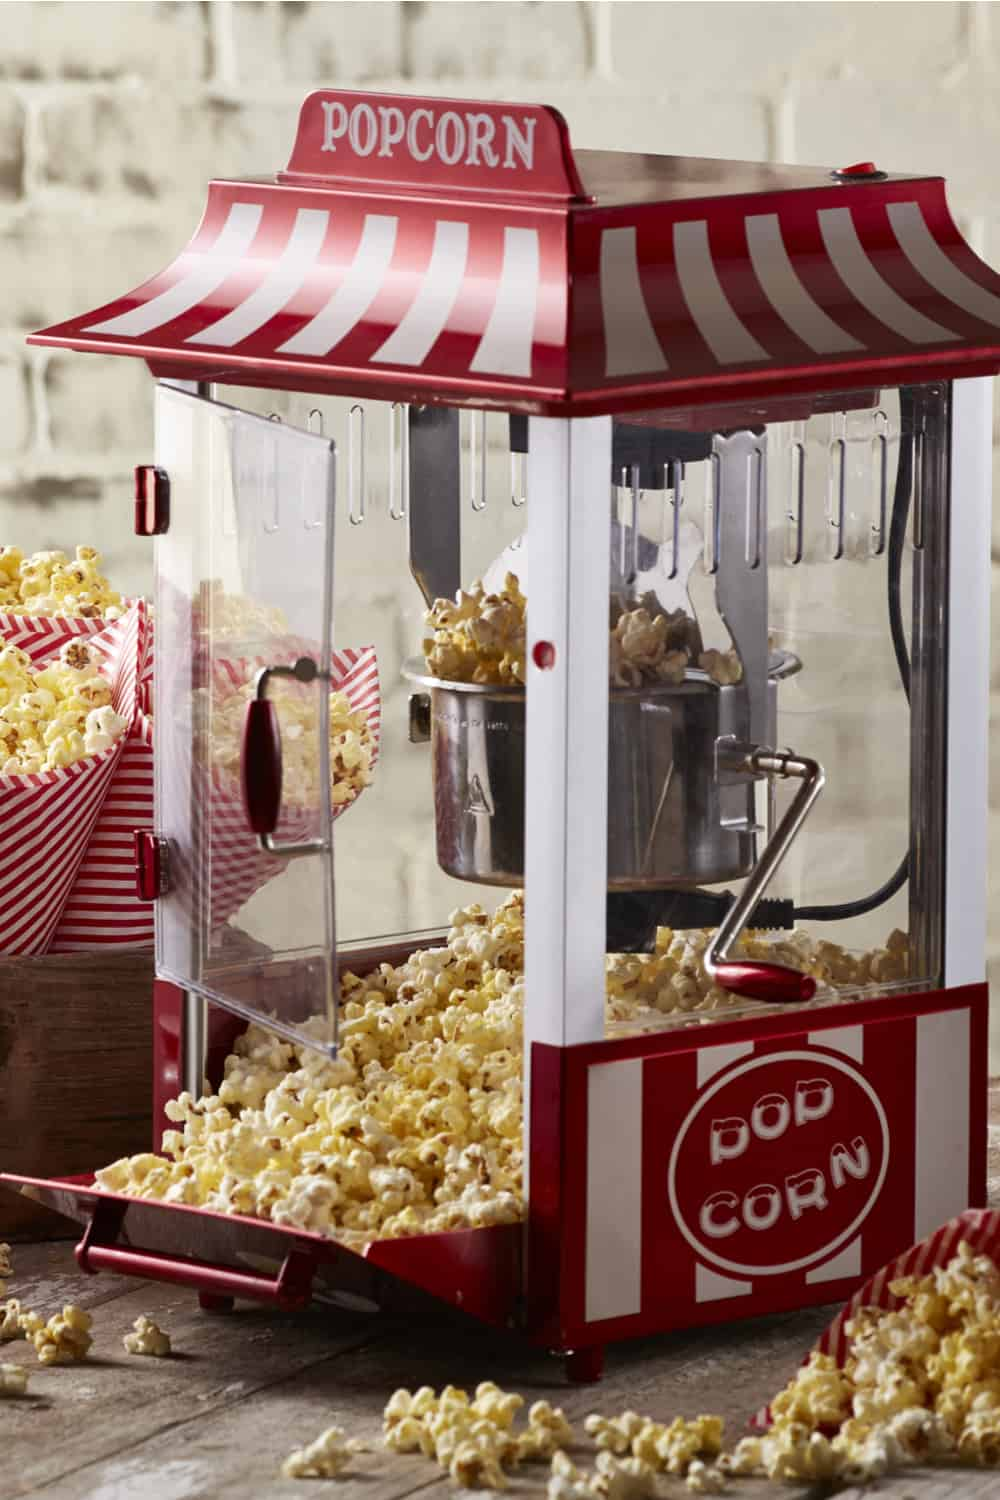 Does Popcorn Go Bad How Long Does It Last